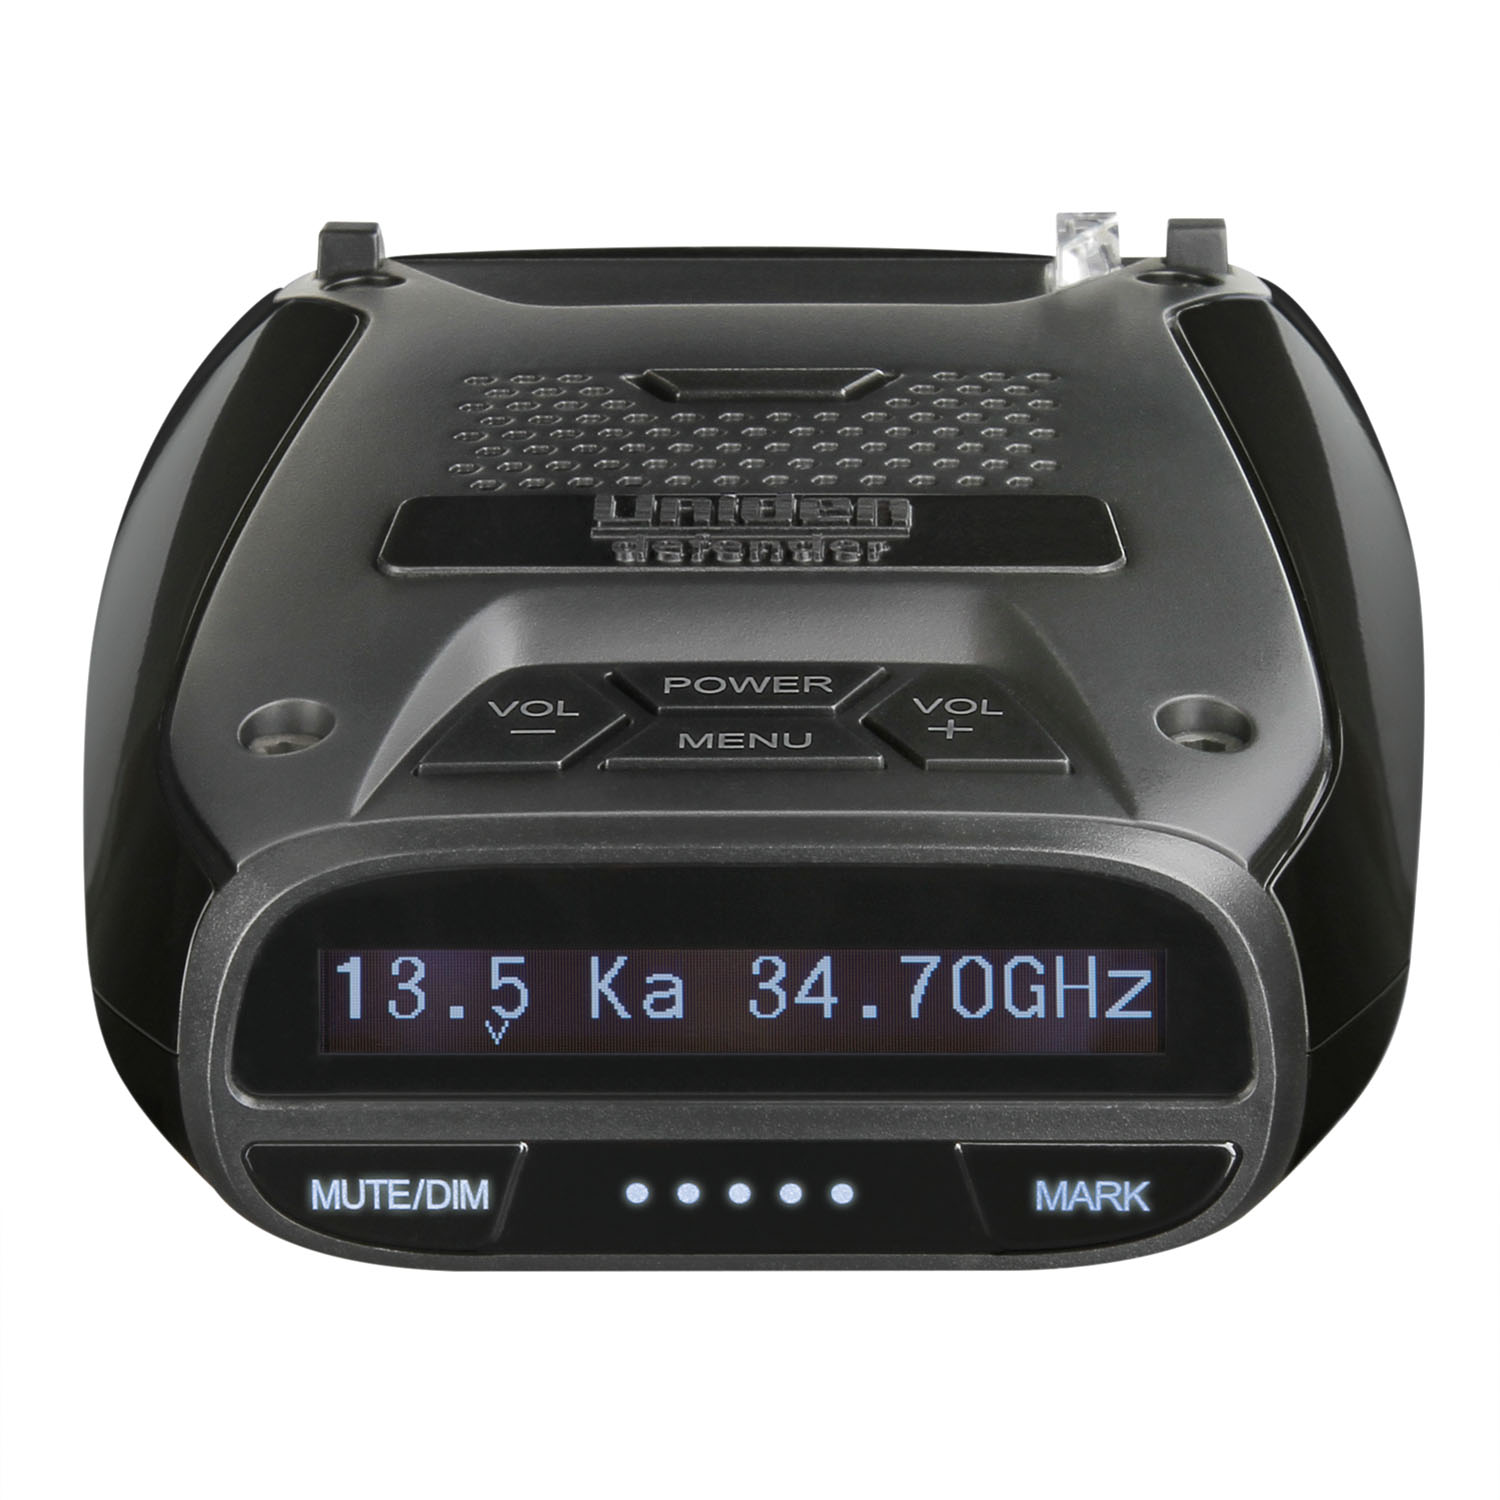 UNIDEN - DELUXE RADAR/LASER DETECTOR WITH BUILT IN GPS FOR RED LIGHT & SPEED CAMERAS, MAX SPEED WARNING, VOICE ALERT, SIGNAL STR